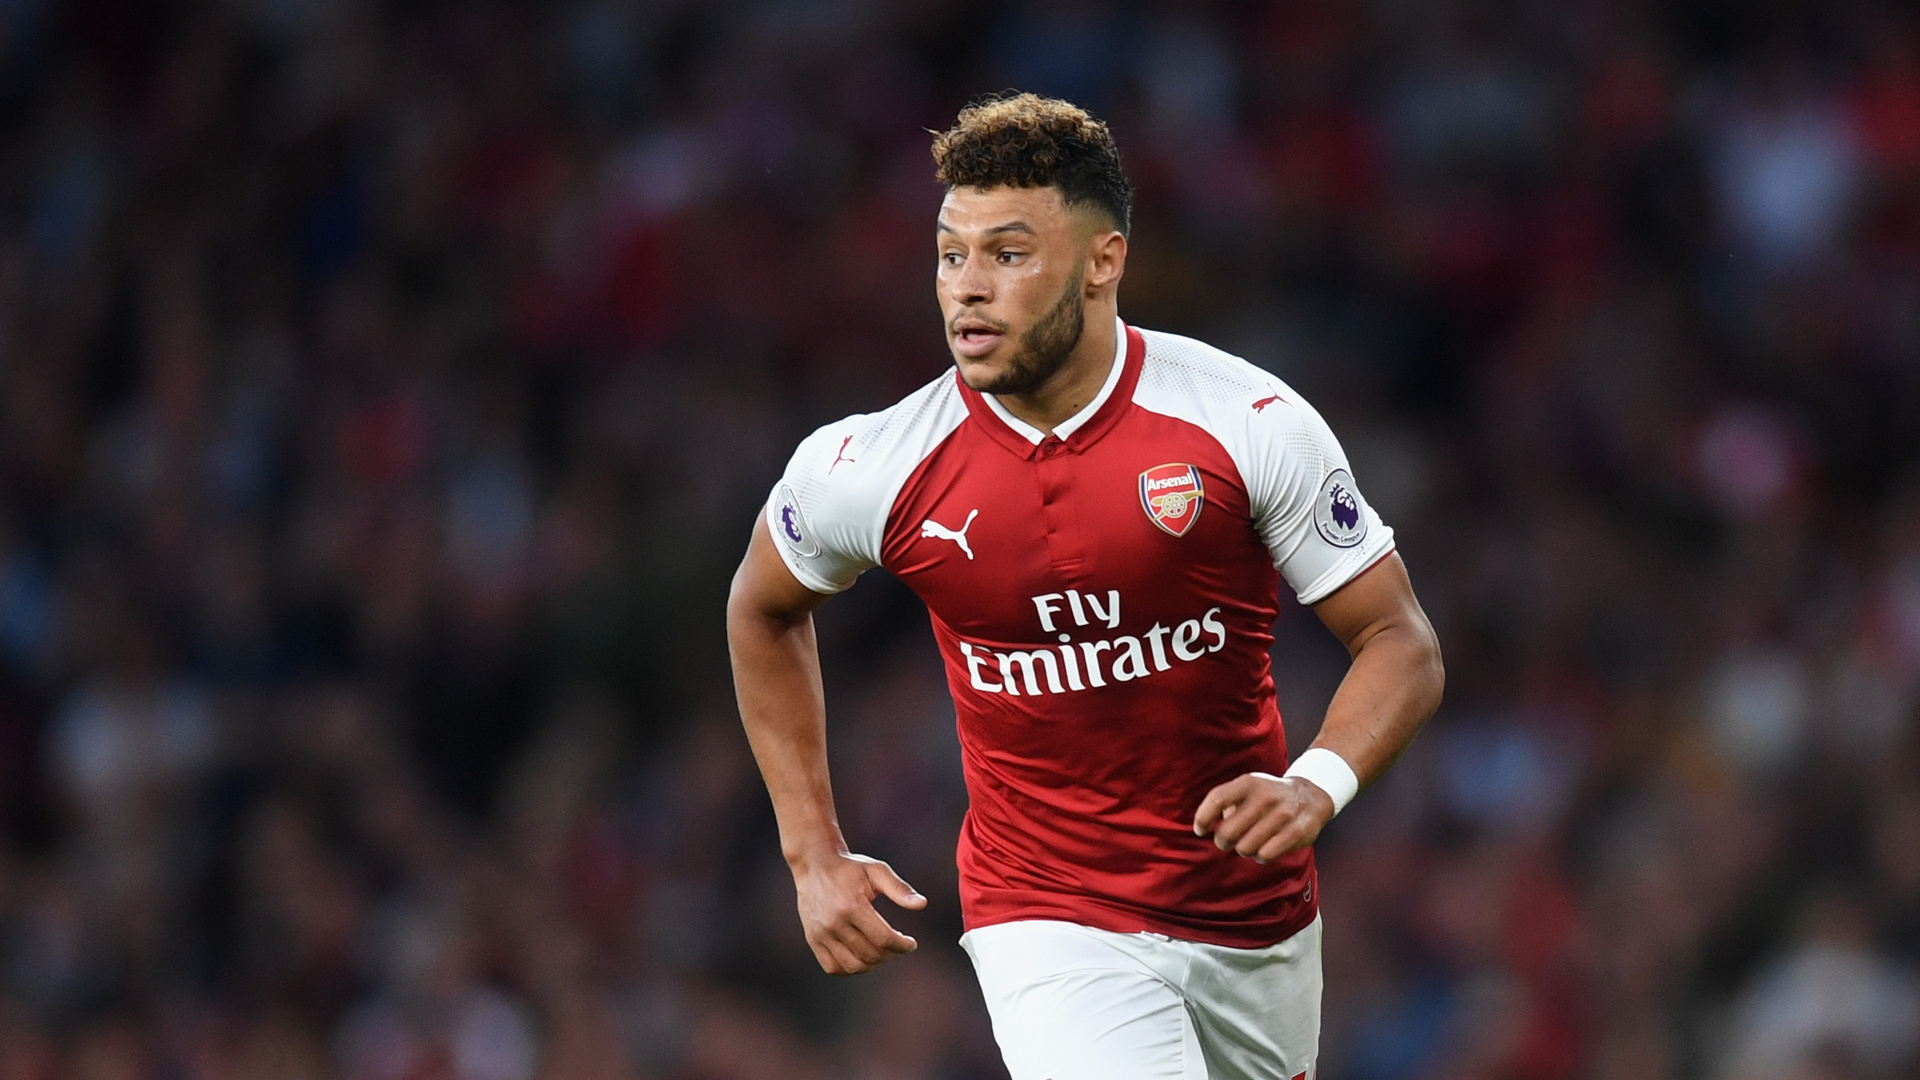 http://images.performgroup.com/di/library/GOAL/a8/9/alex-oxlade-chamberlain_fcrky4r3xe3w1i5g85odzve63.png?t=766391606